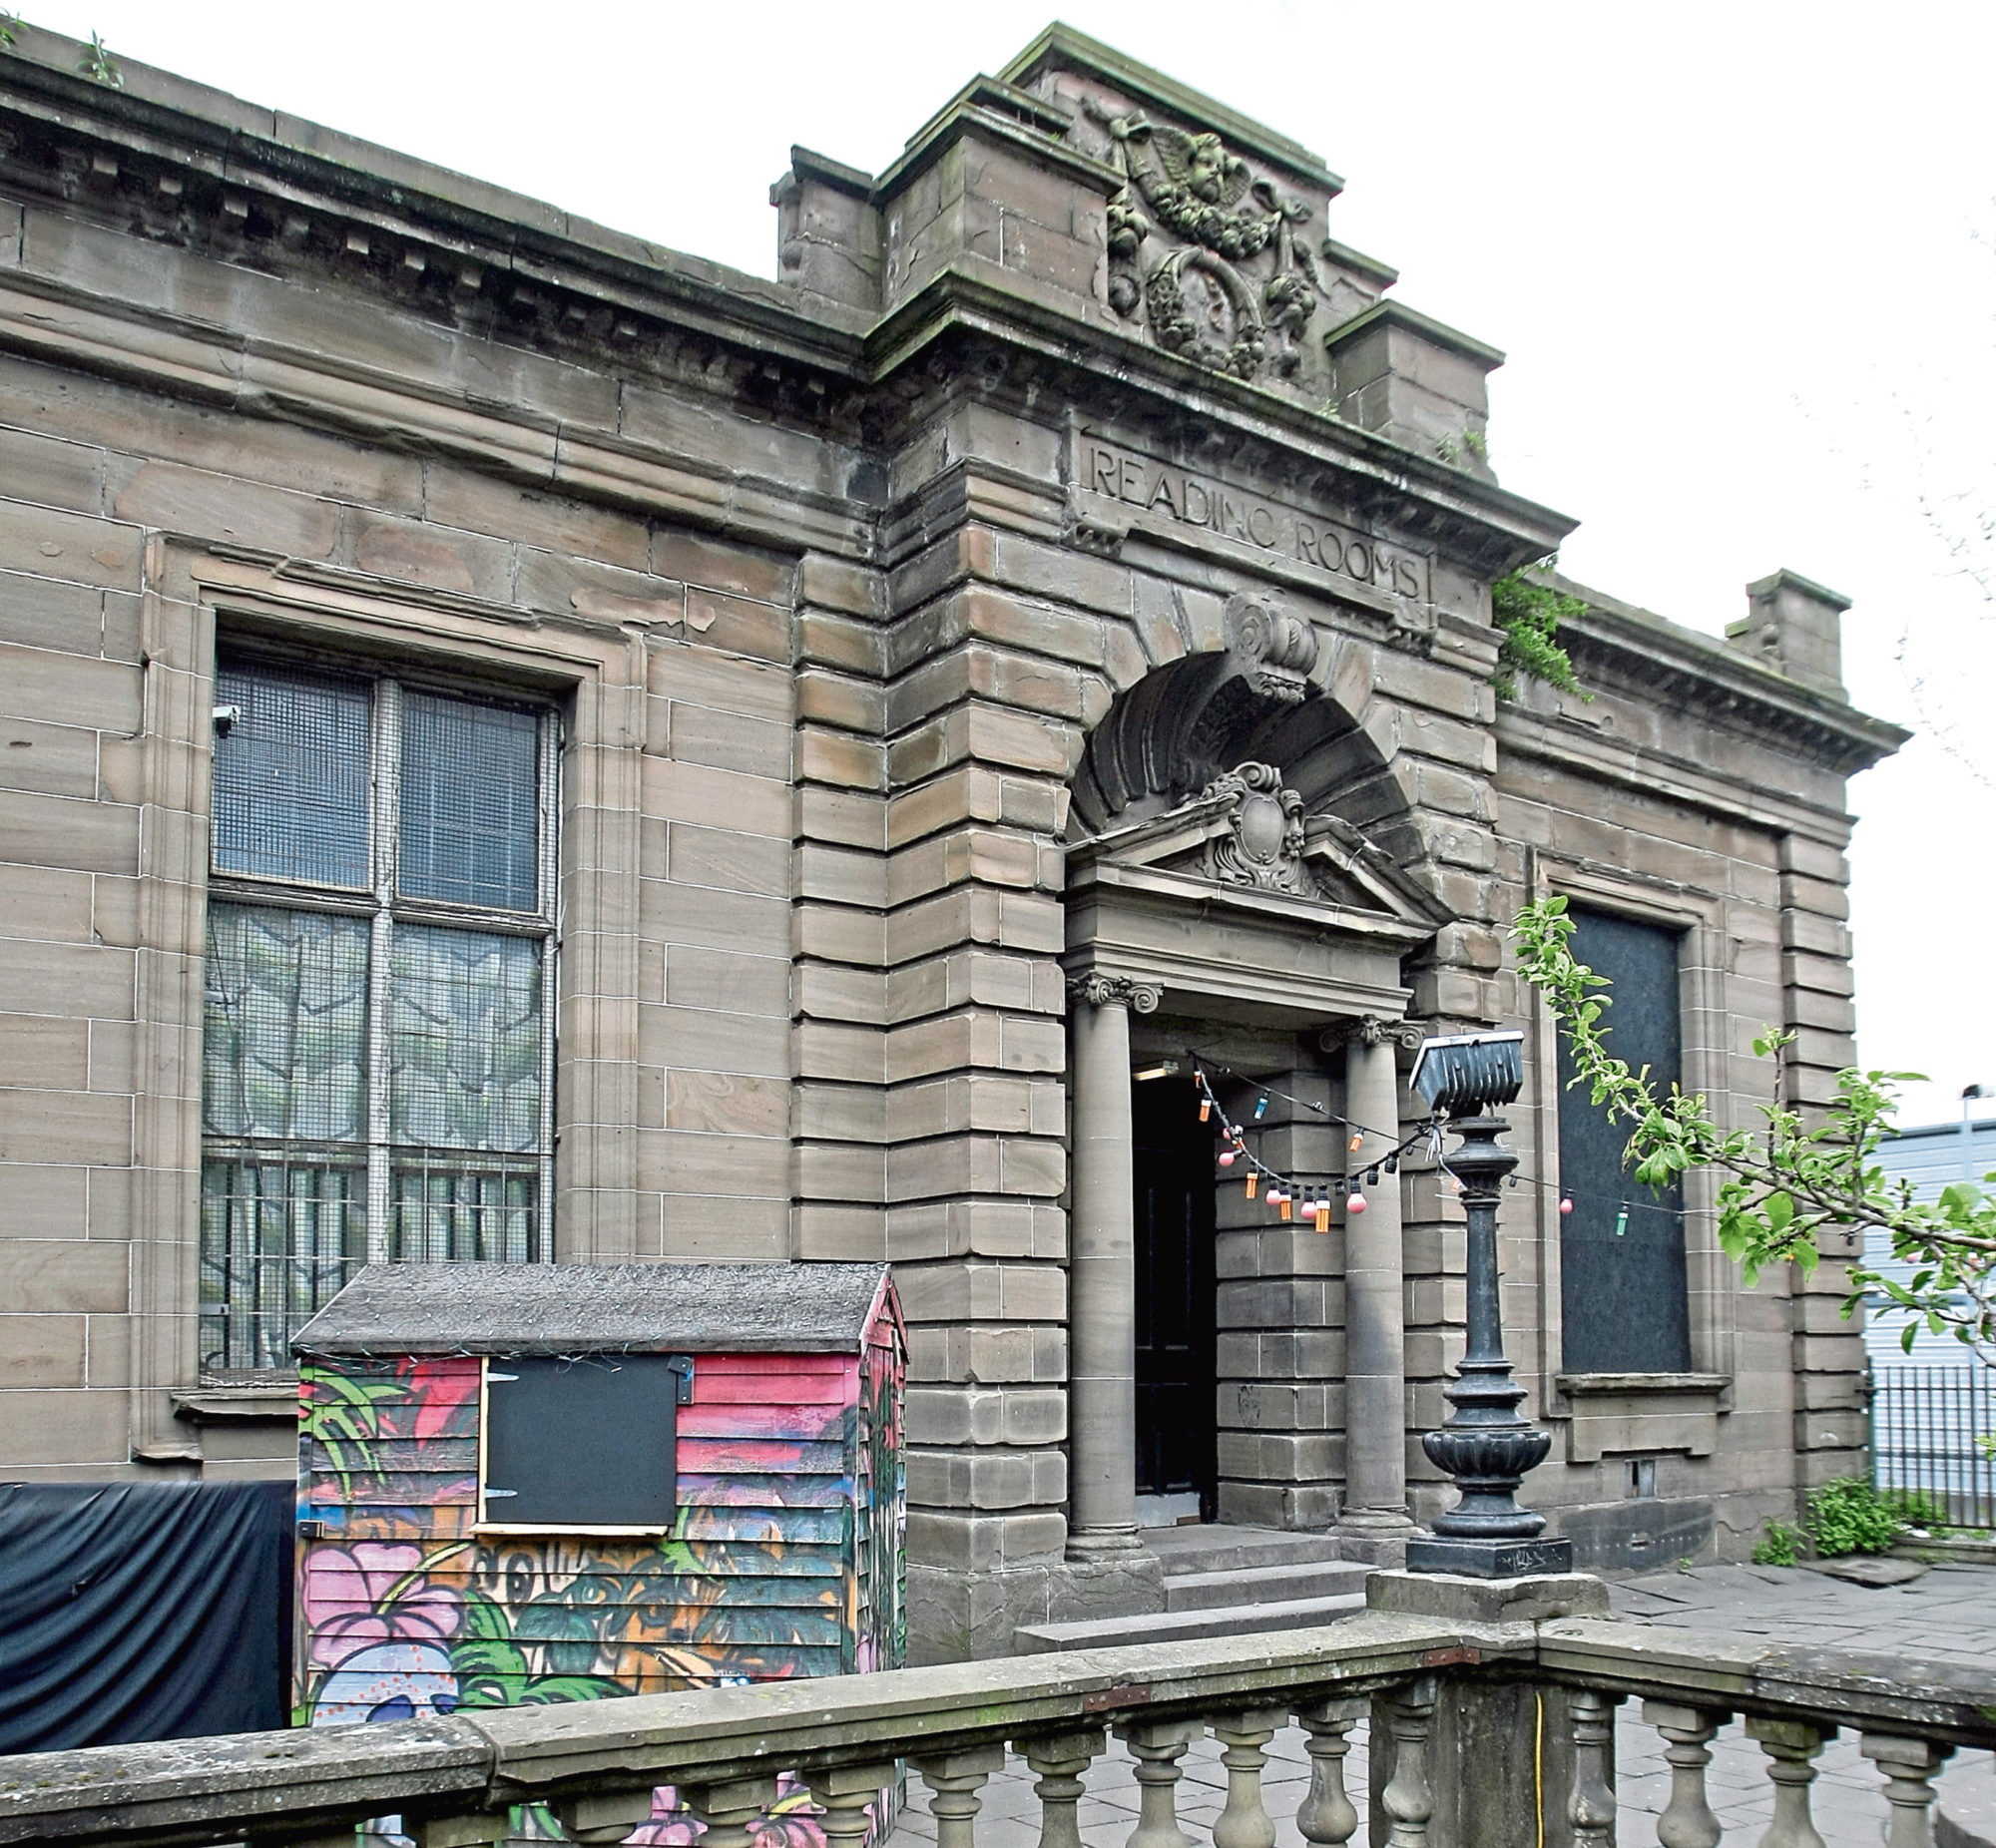 Building exterior of the Reading Rooms at Blackscroft, Dundee